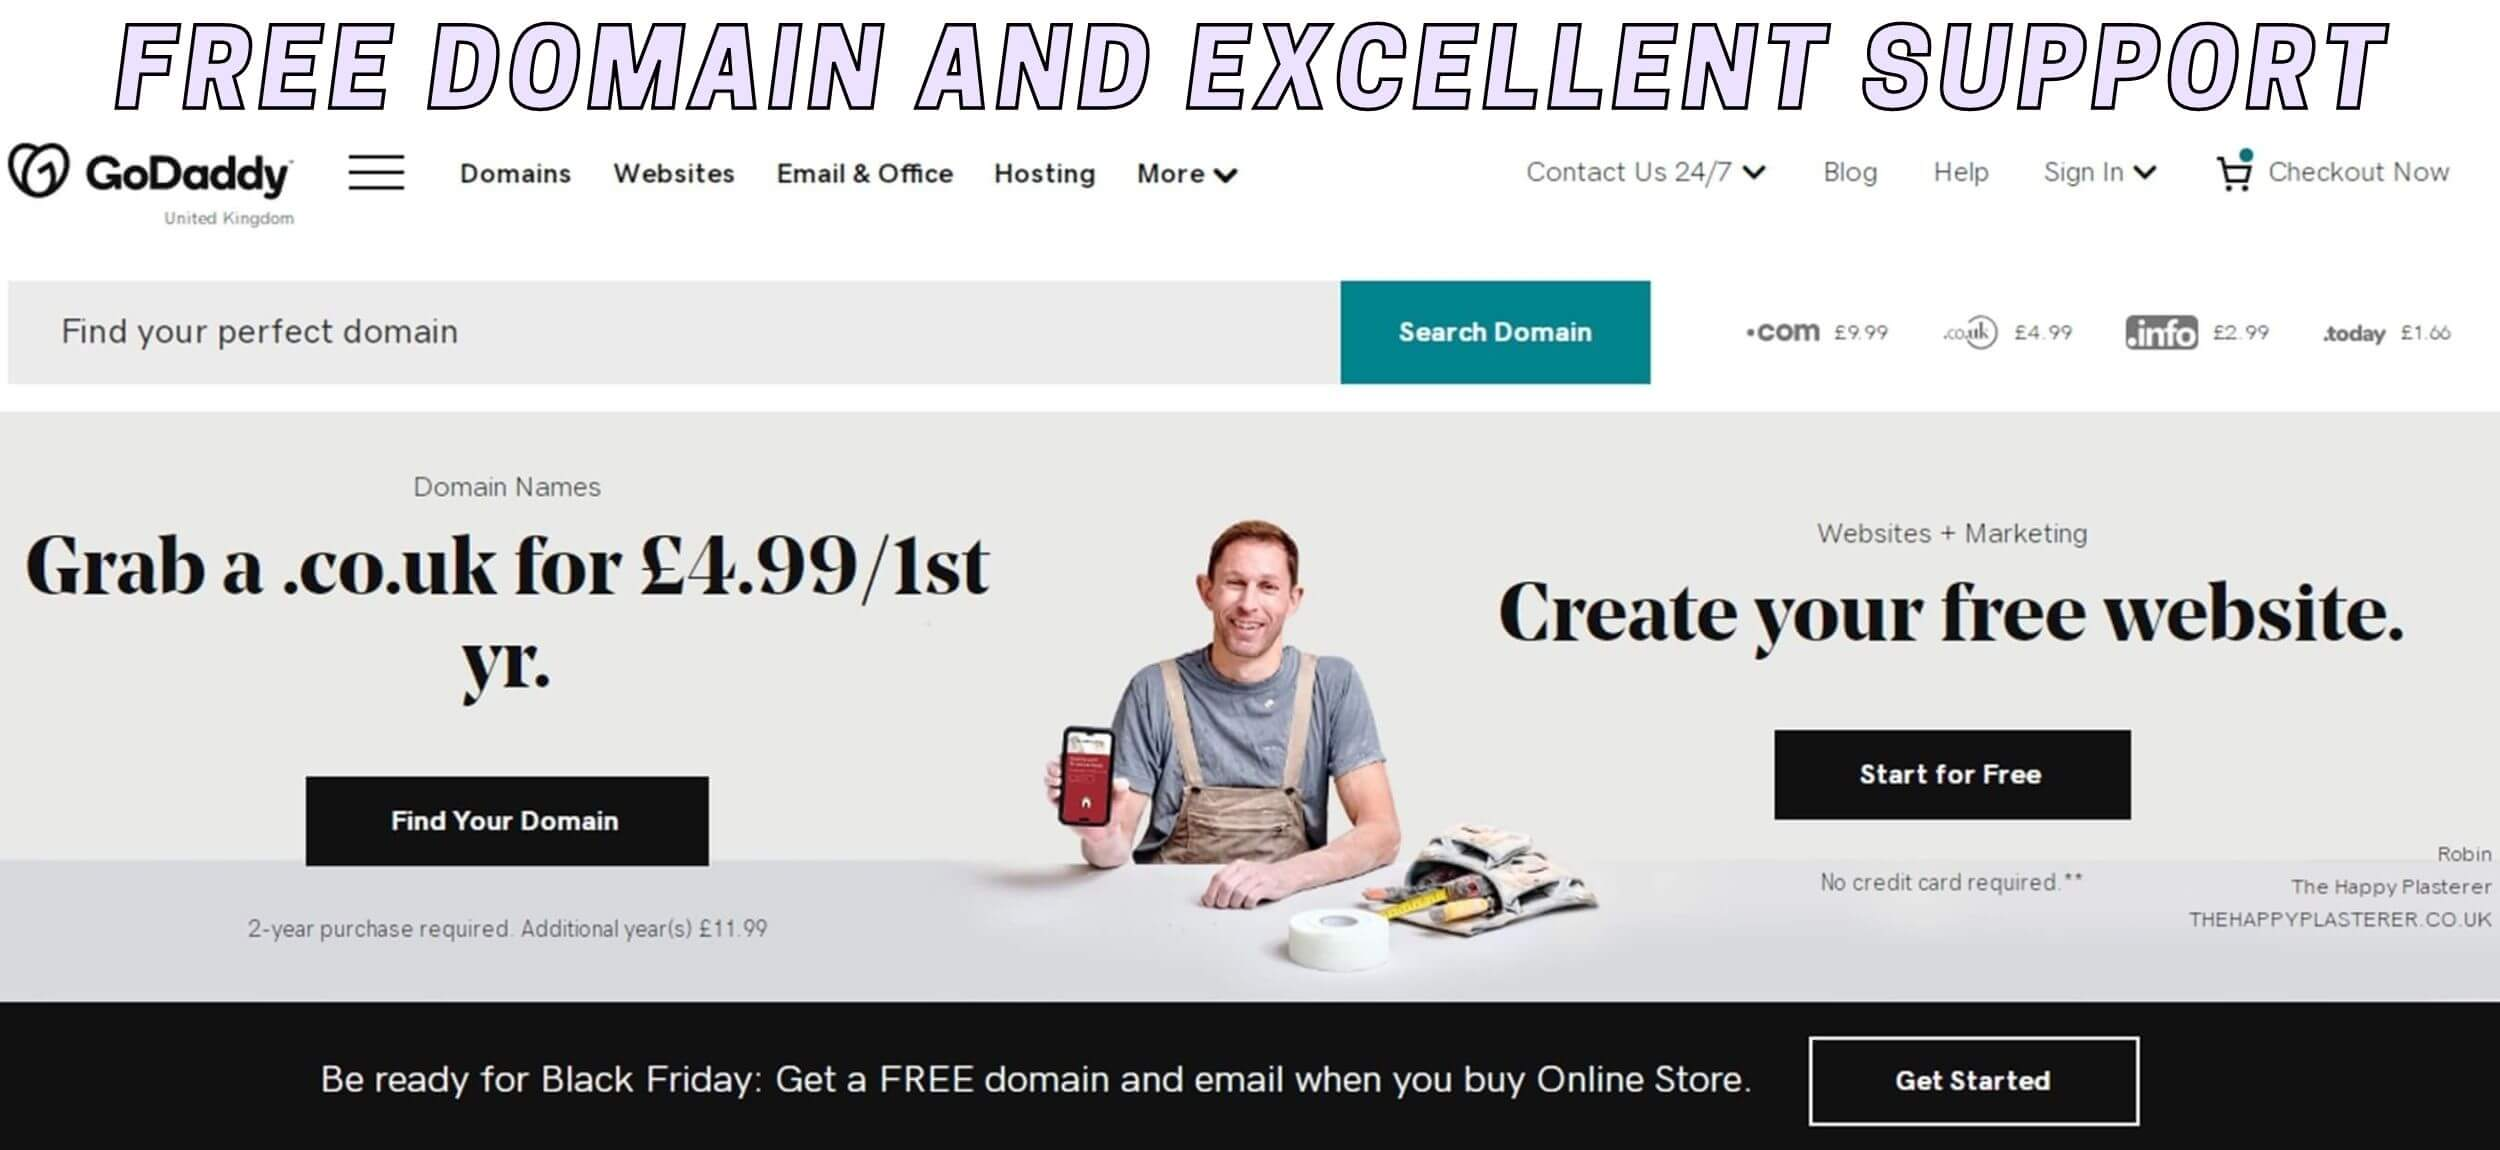 GoDaddy free domain and excellent support